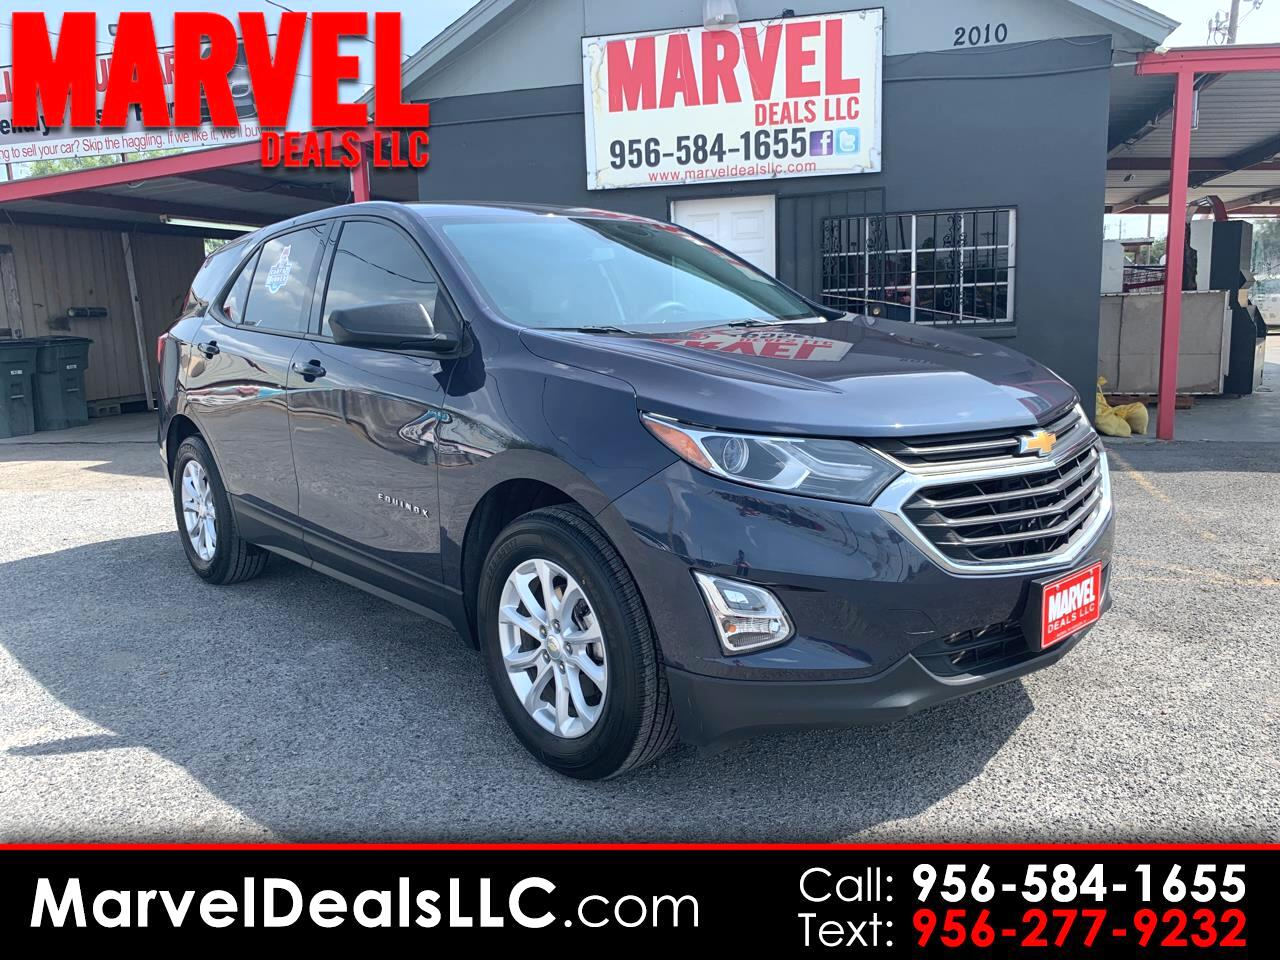 Used Cars for Sale McAllen TX 78501 Marvel Deals LLC